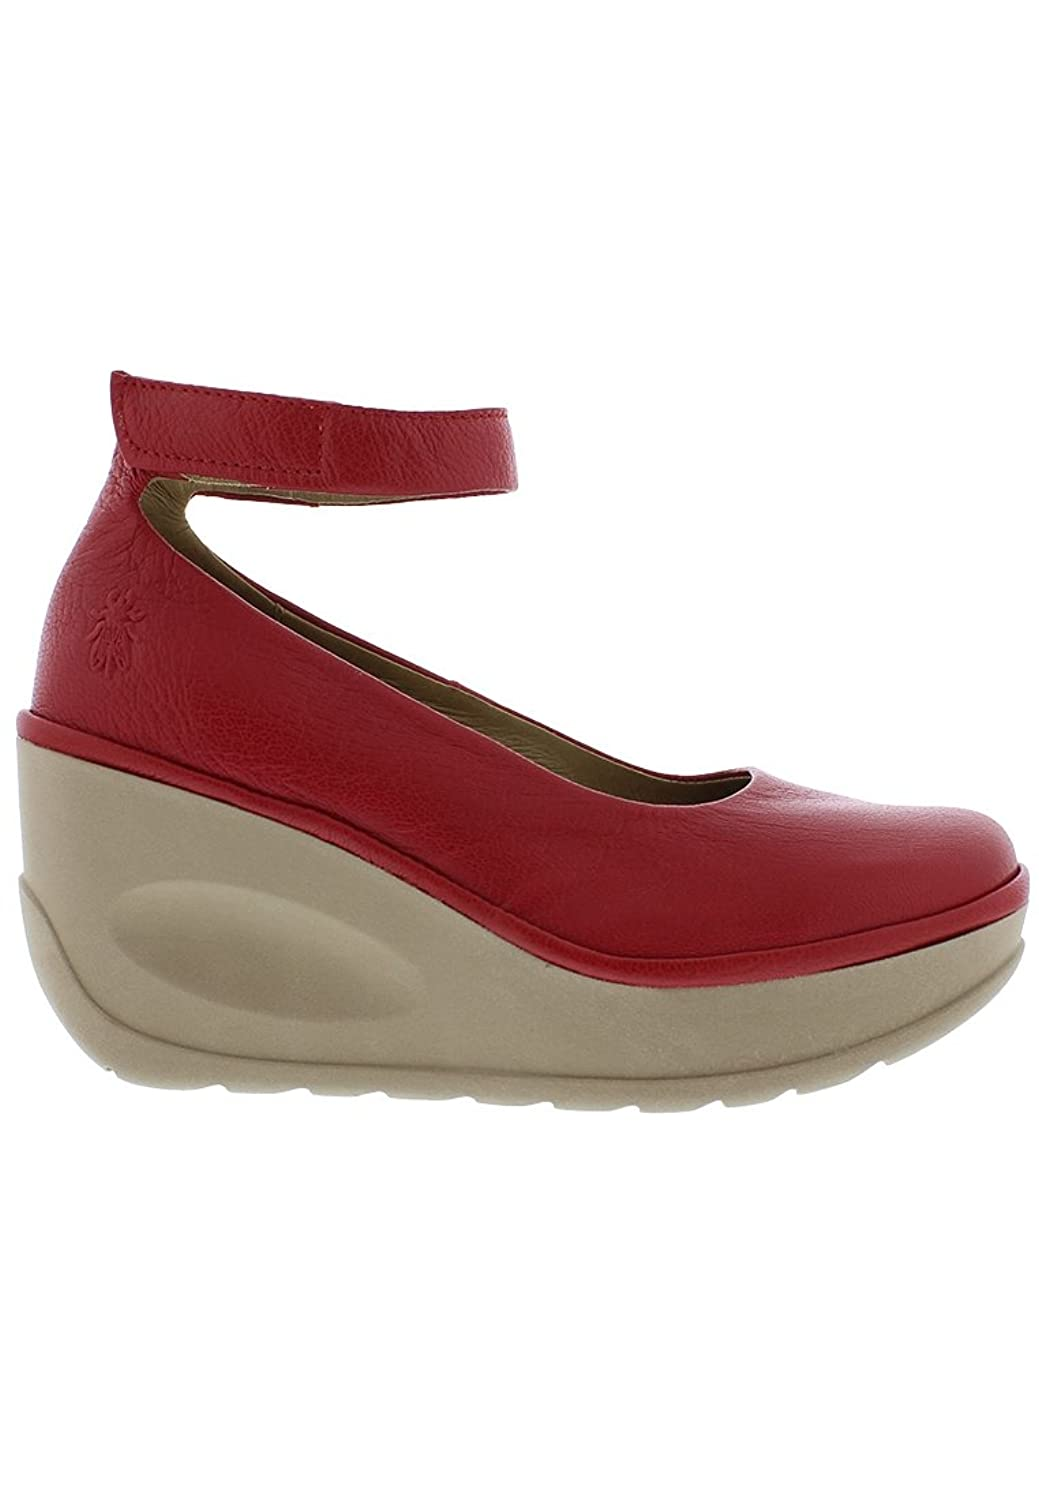 Fly London Chaussures P500877001 Jynx877fly Rouge Taille 38 FZxhlpVQ